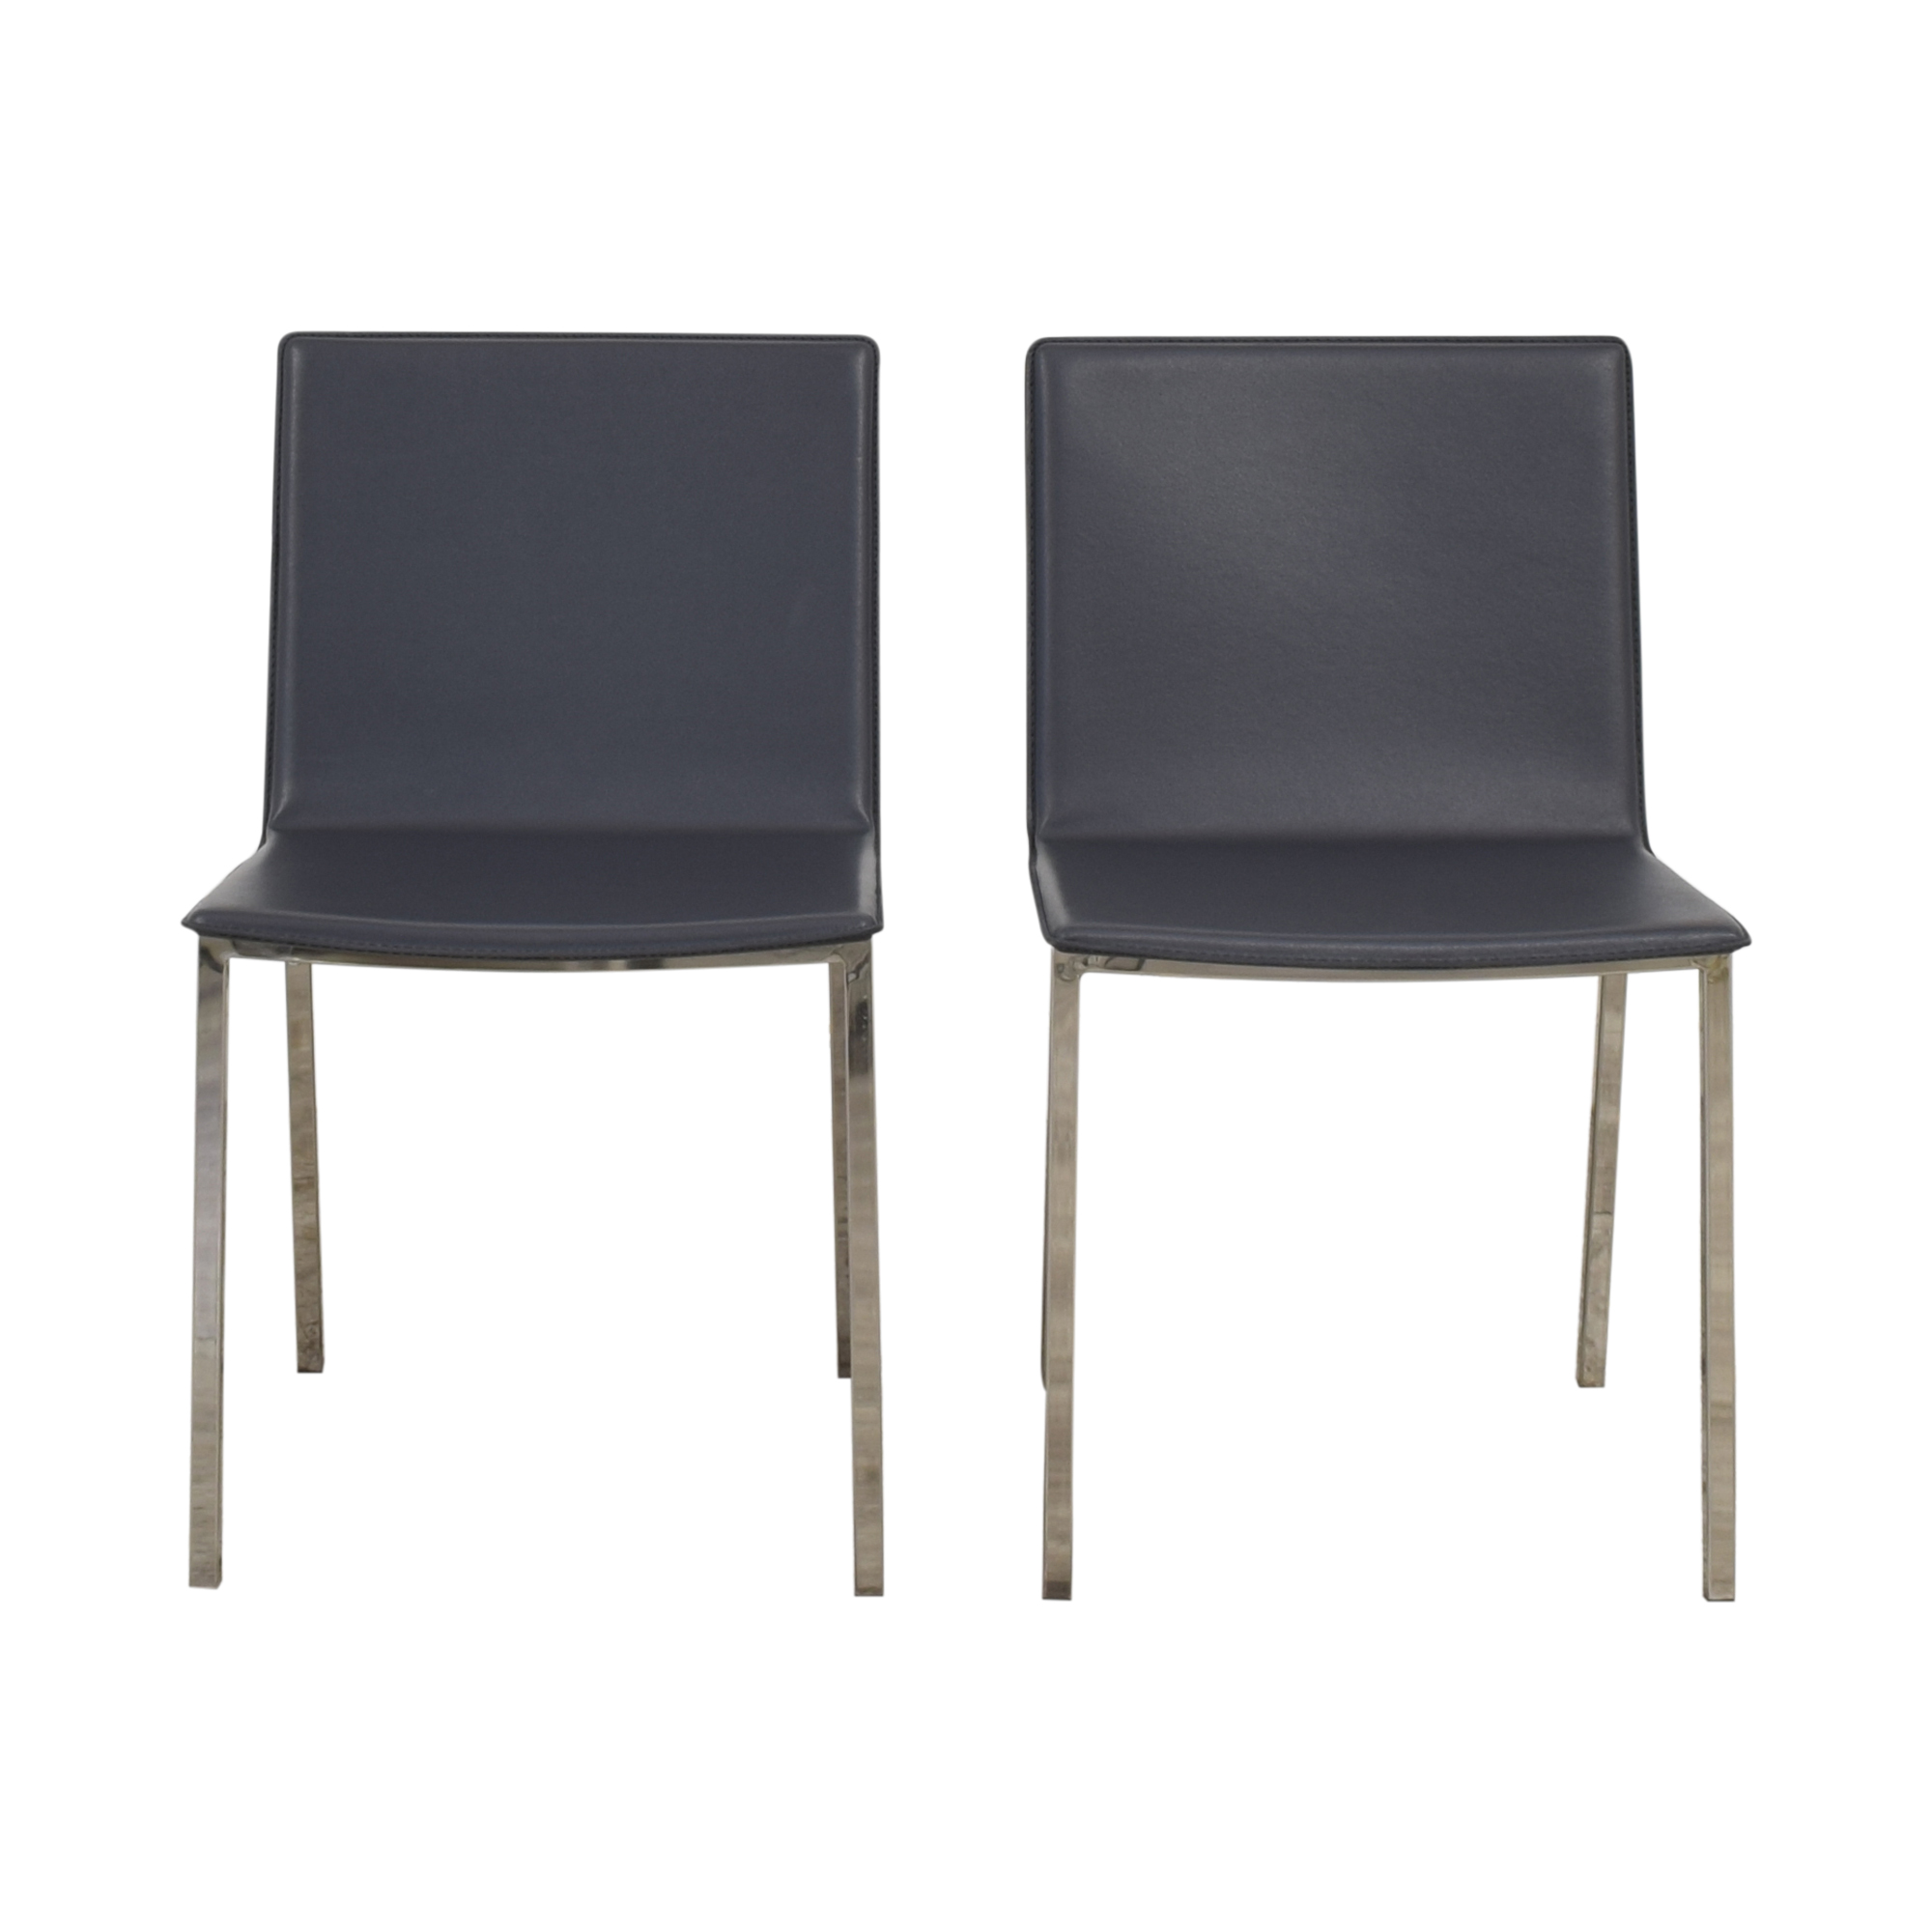 CB2 CB2 Phoenix Carbon Grey Chairs price